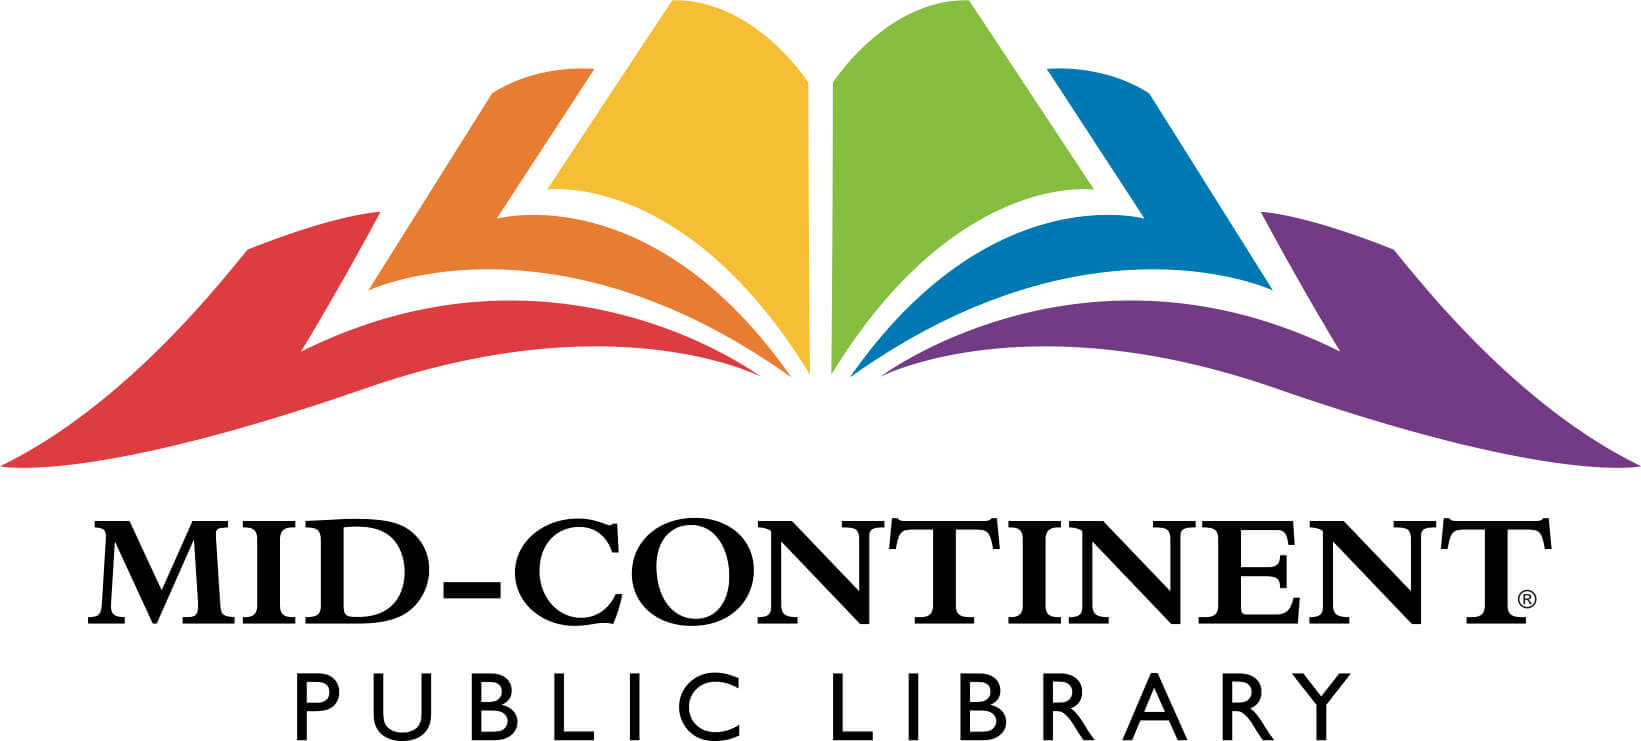 Mid Continent Public Library